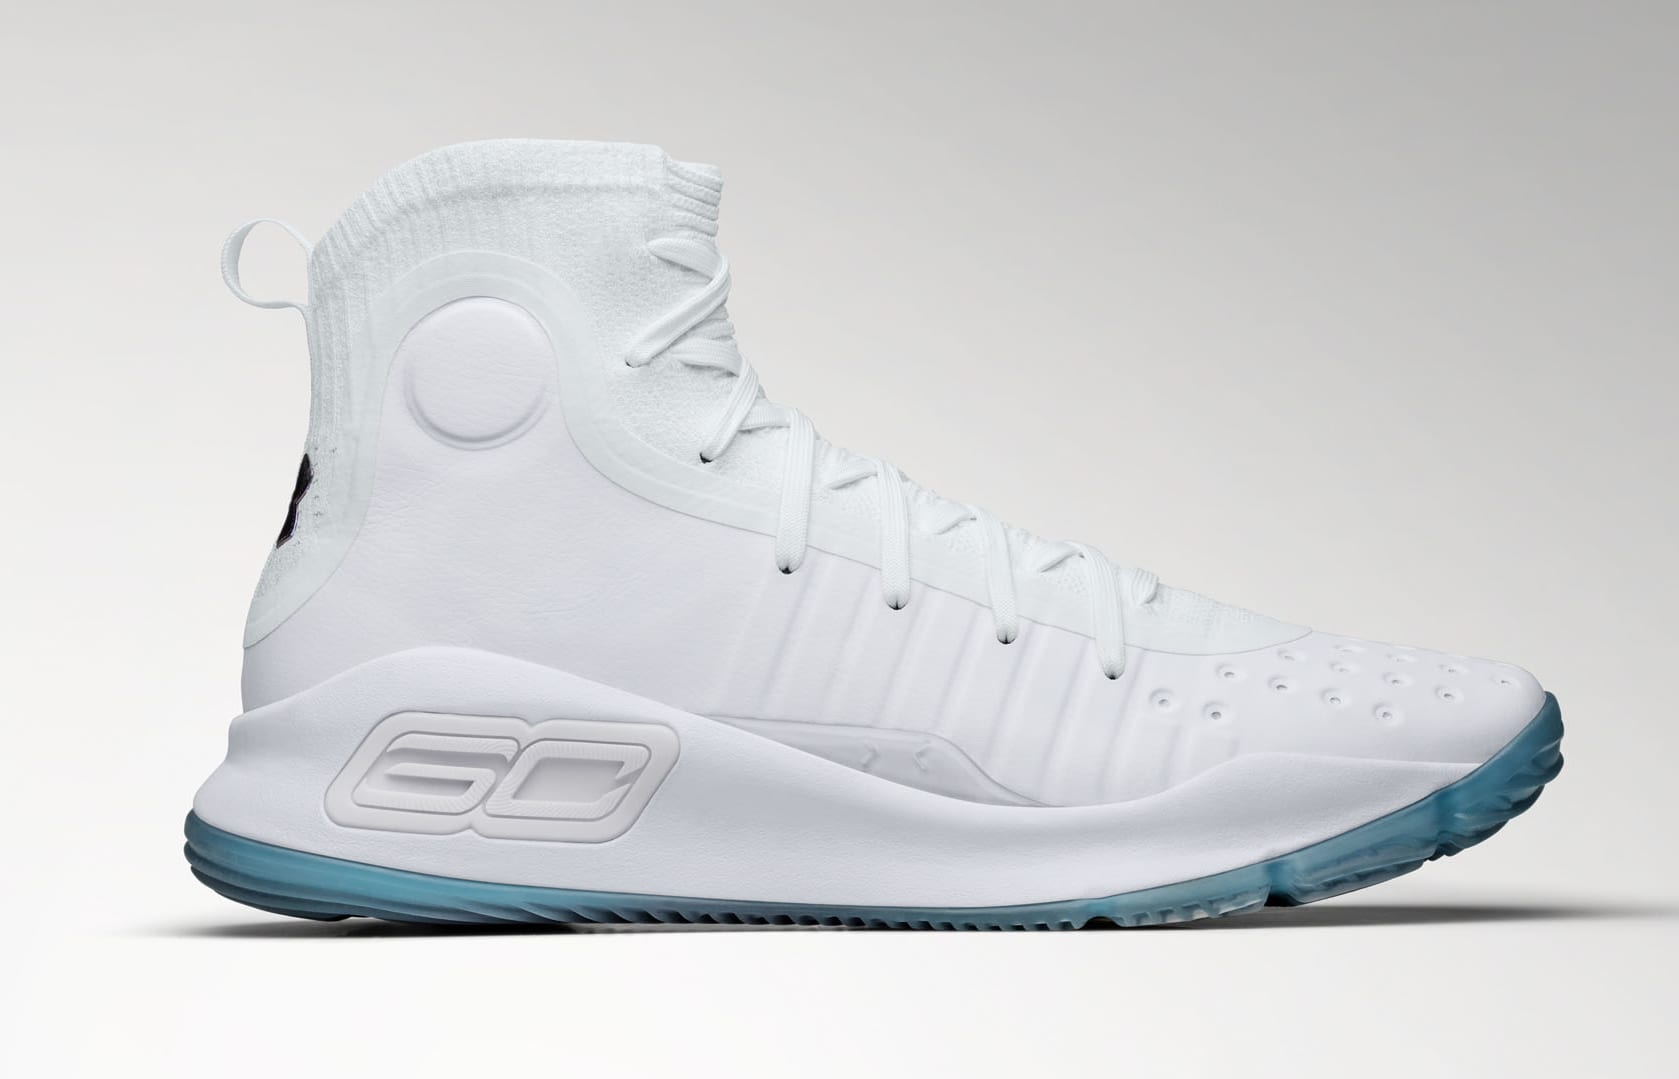 Under Armour Curry 4 'All Star' 1298306-108 (Lateral)